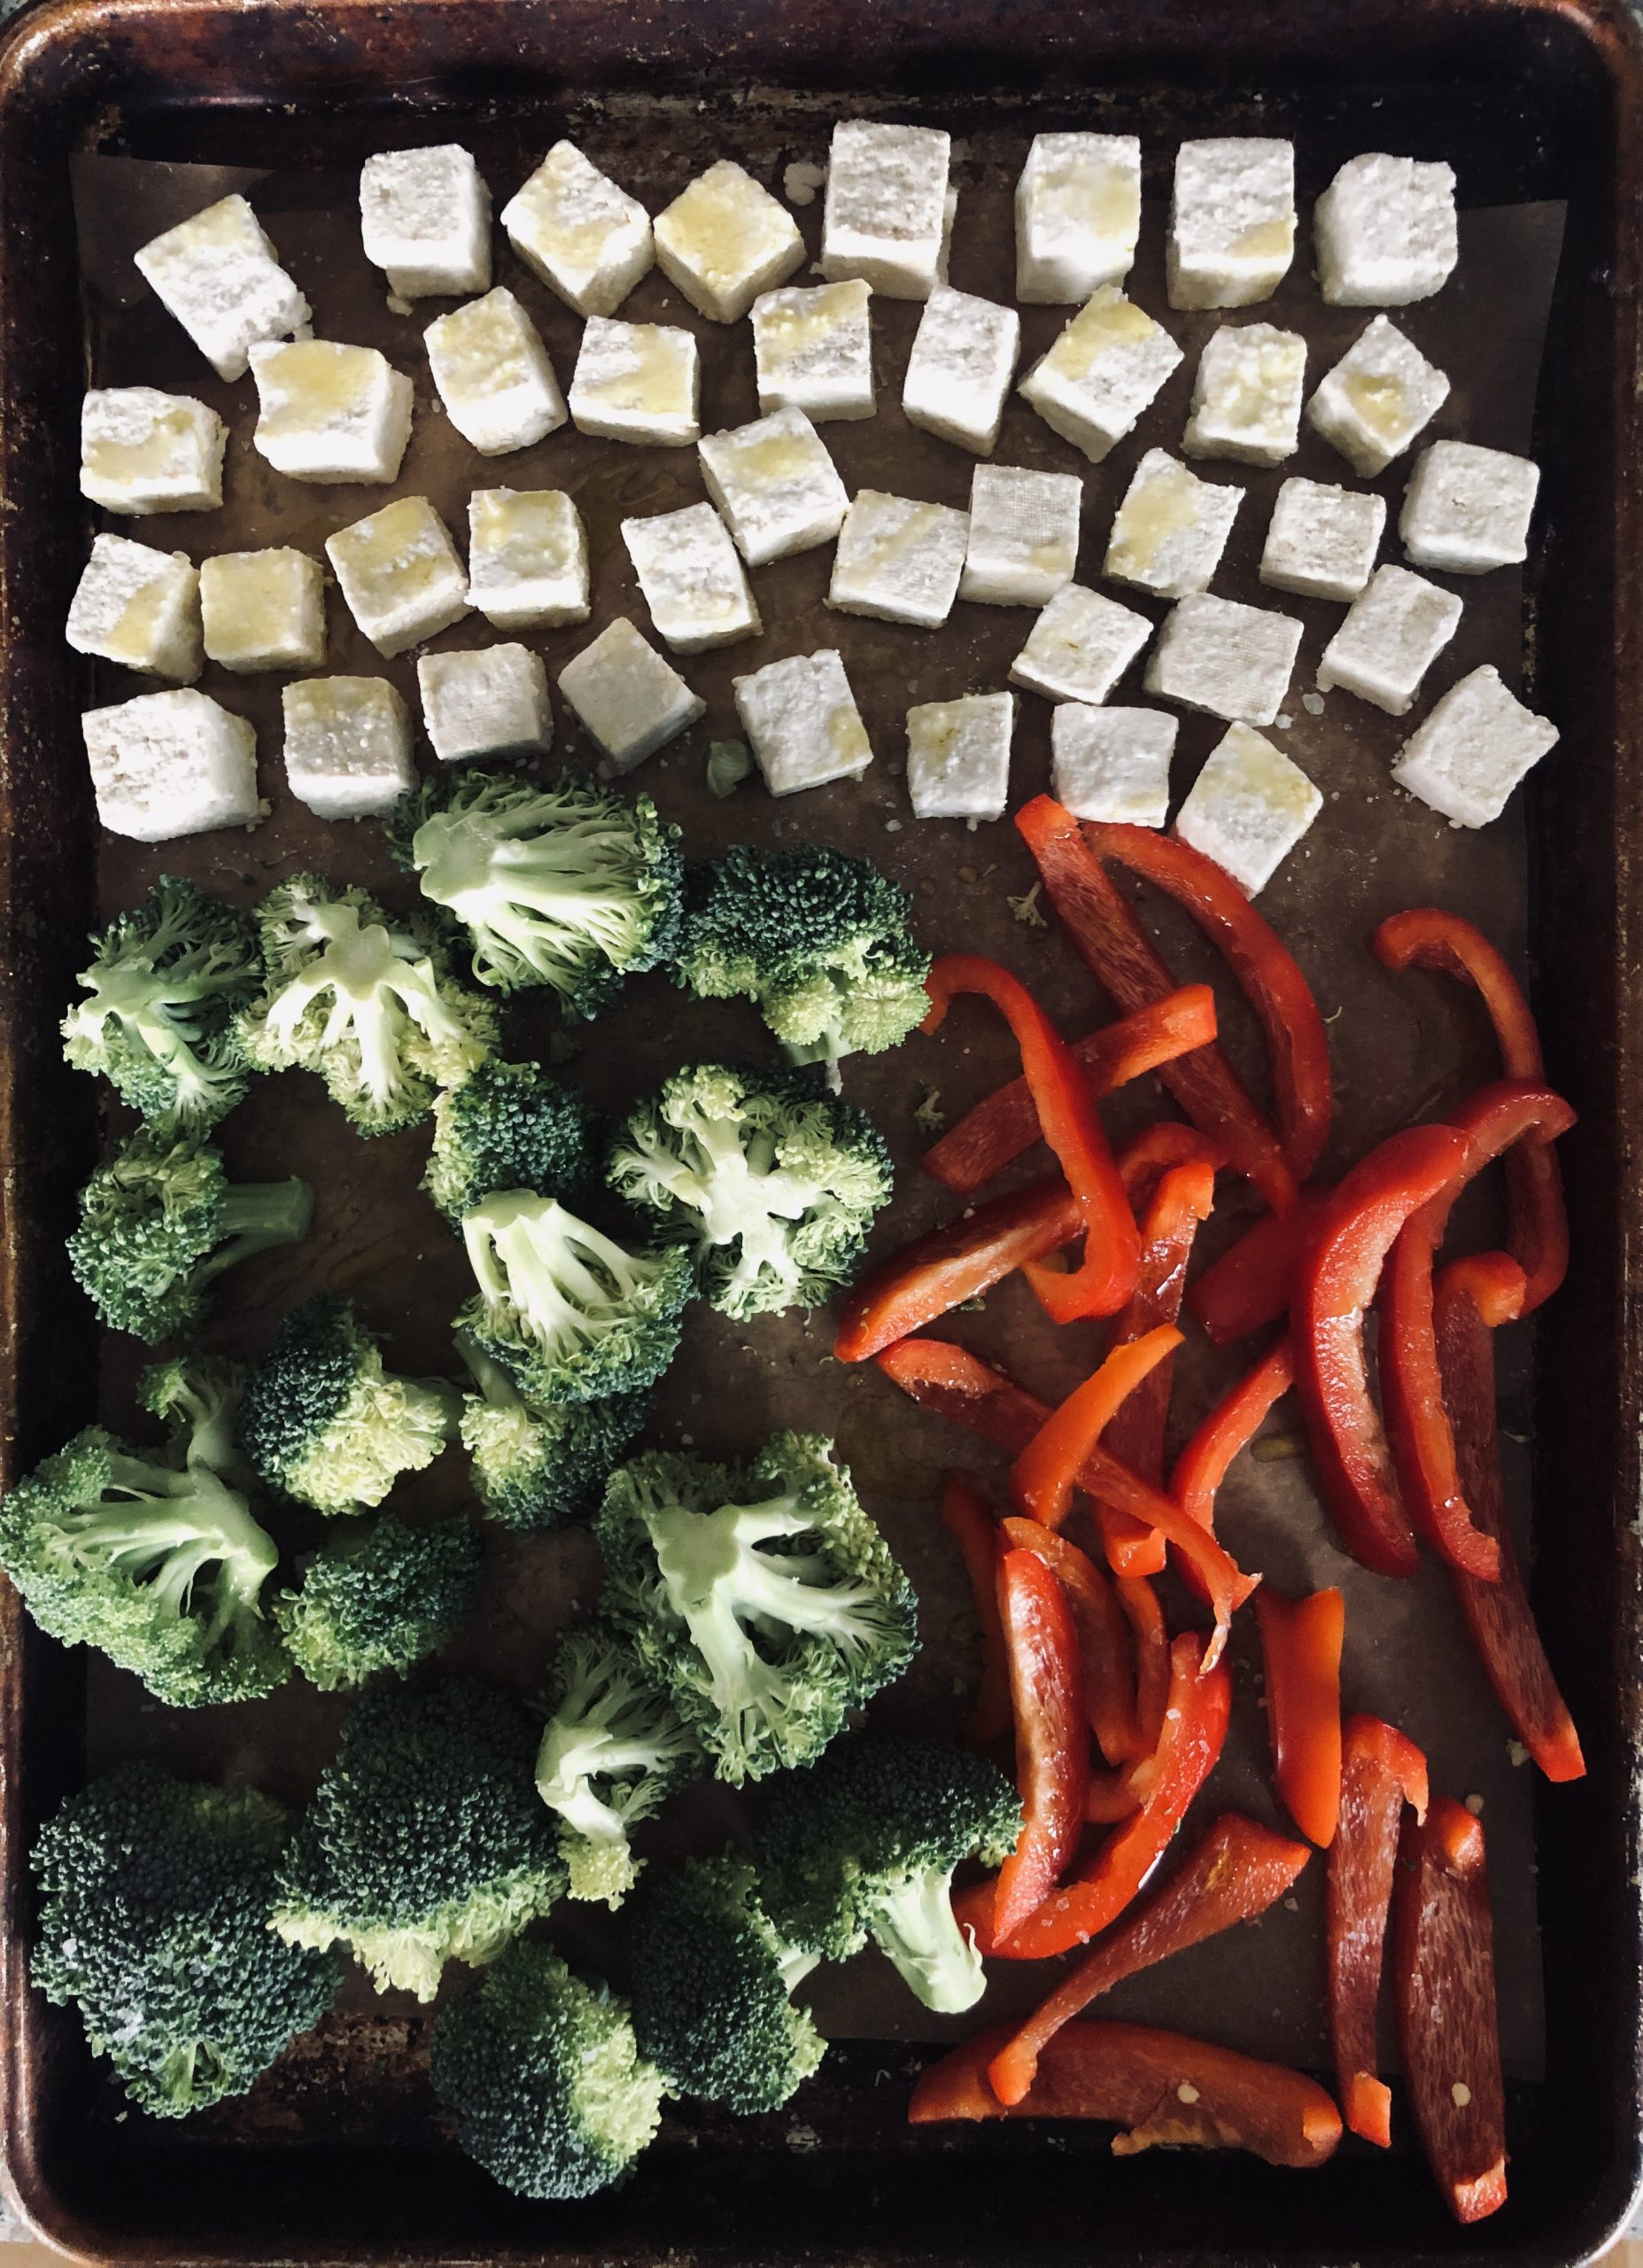 tofu, broccoli, and red pepper slices on a sheet pan